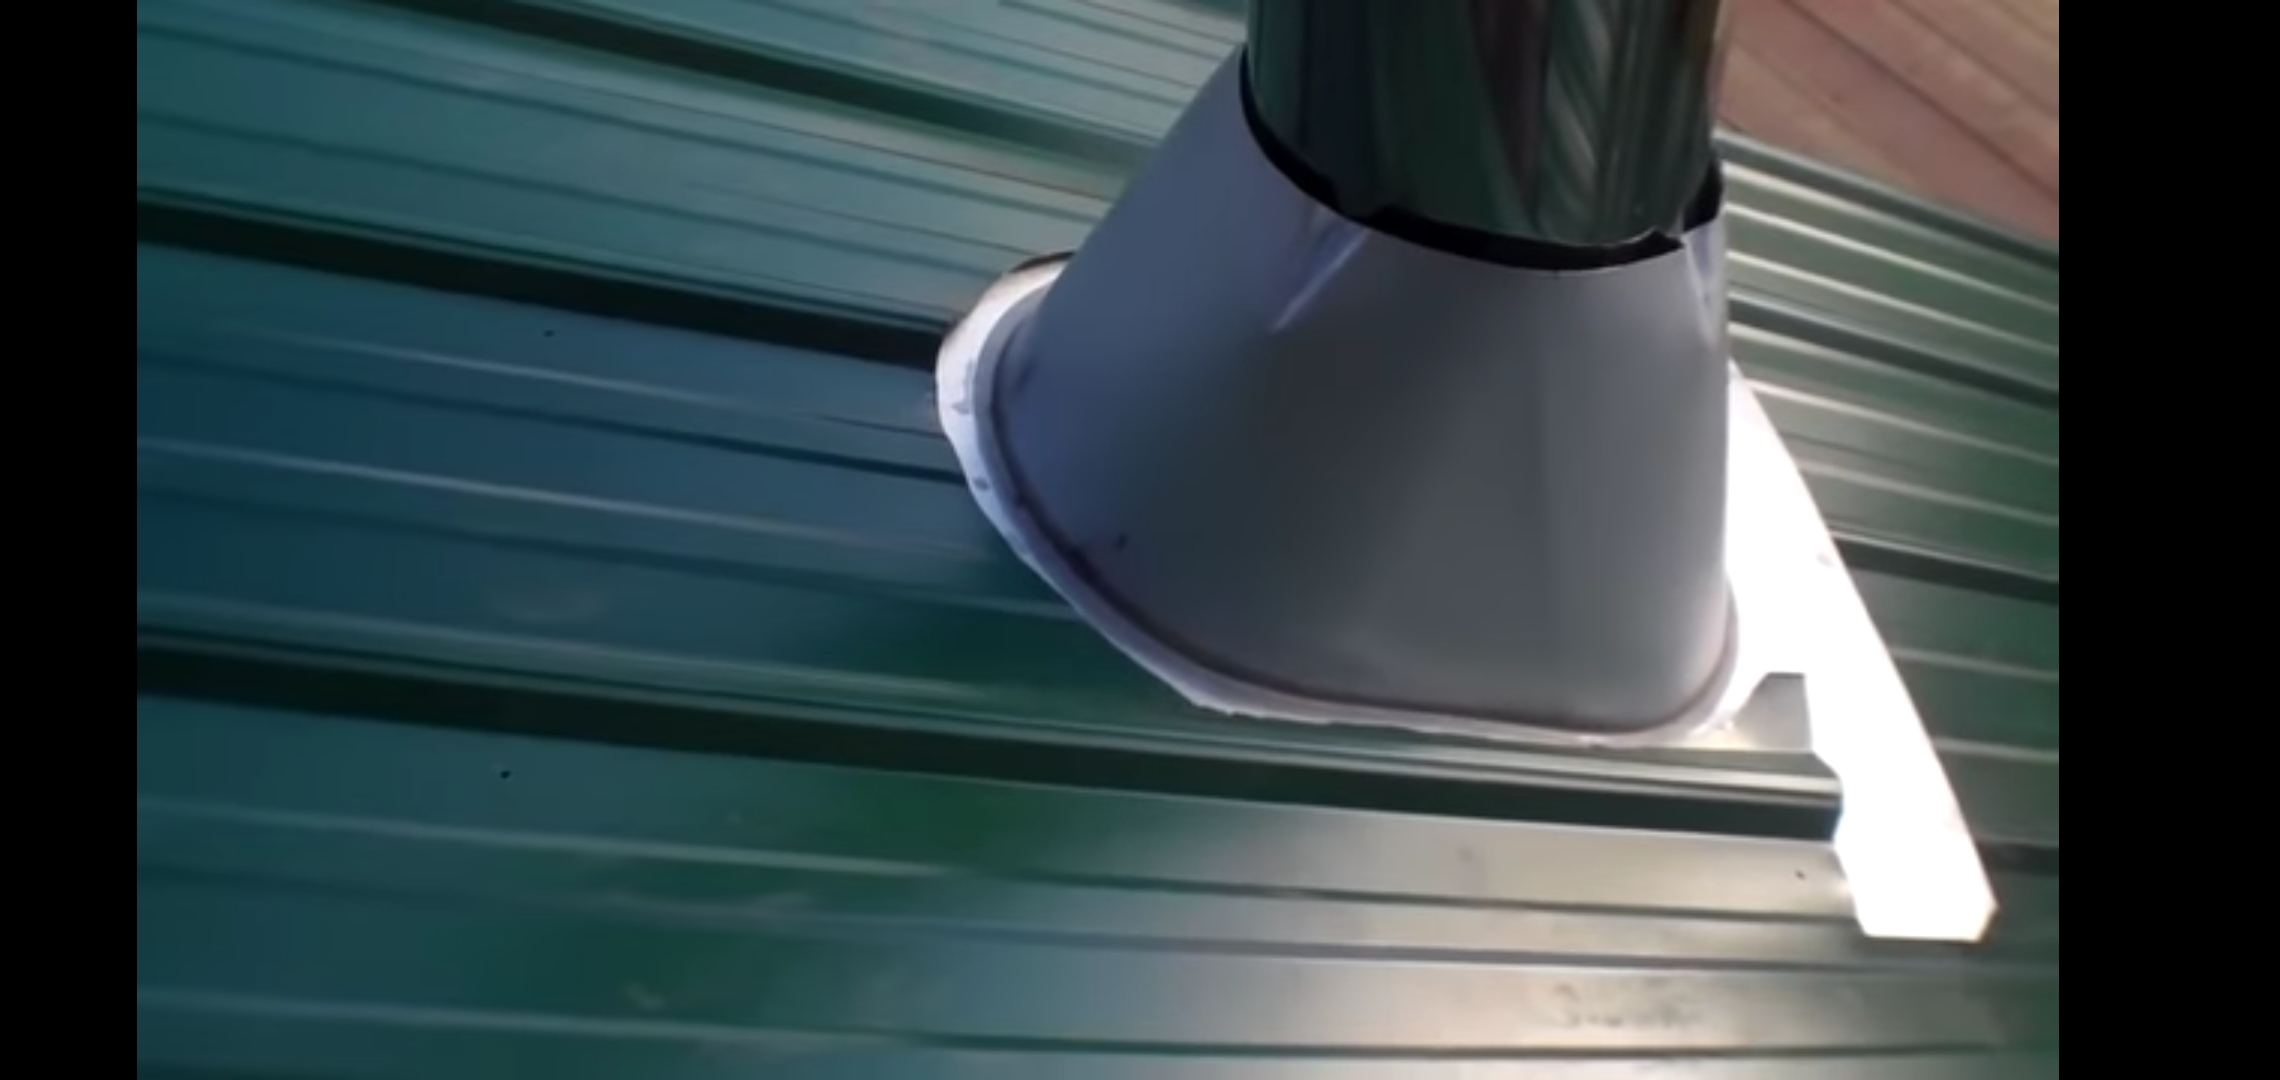 This is a picture of a metal chimney vent coming through a green metal roof. This is the proper way to install it with the top under the metal.